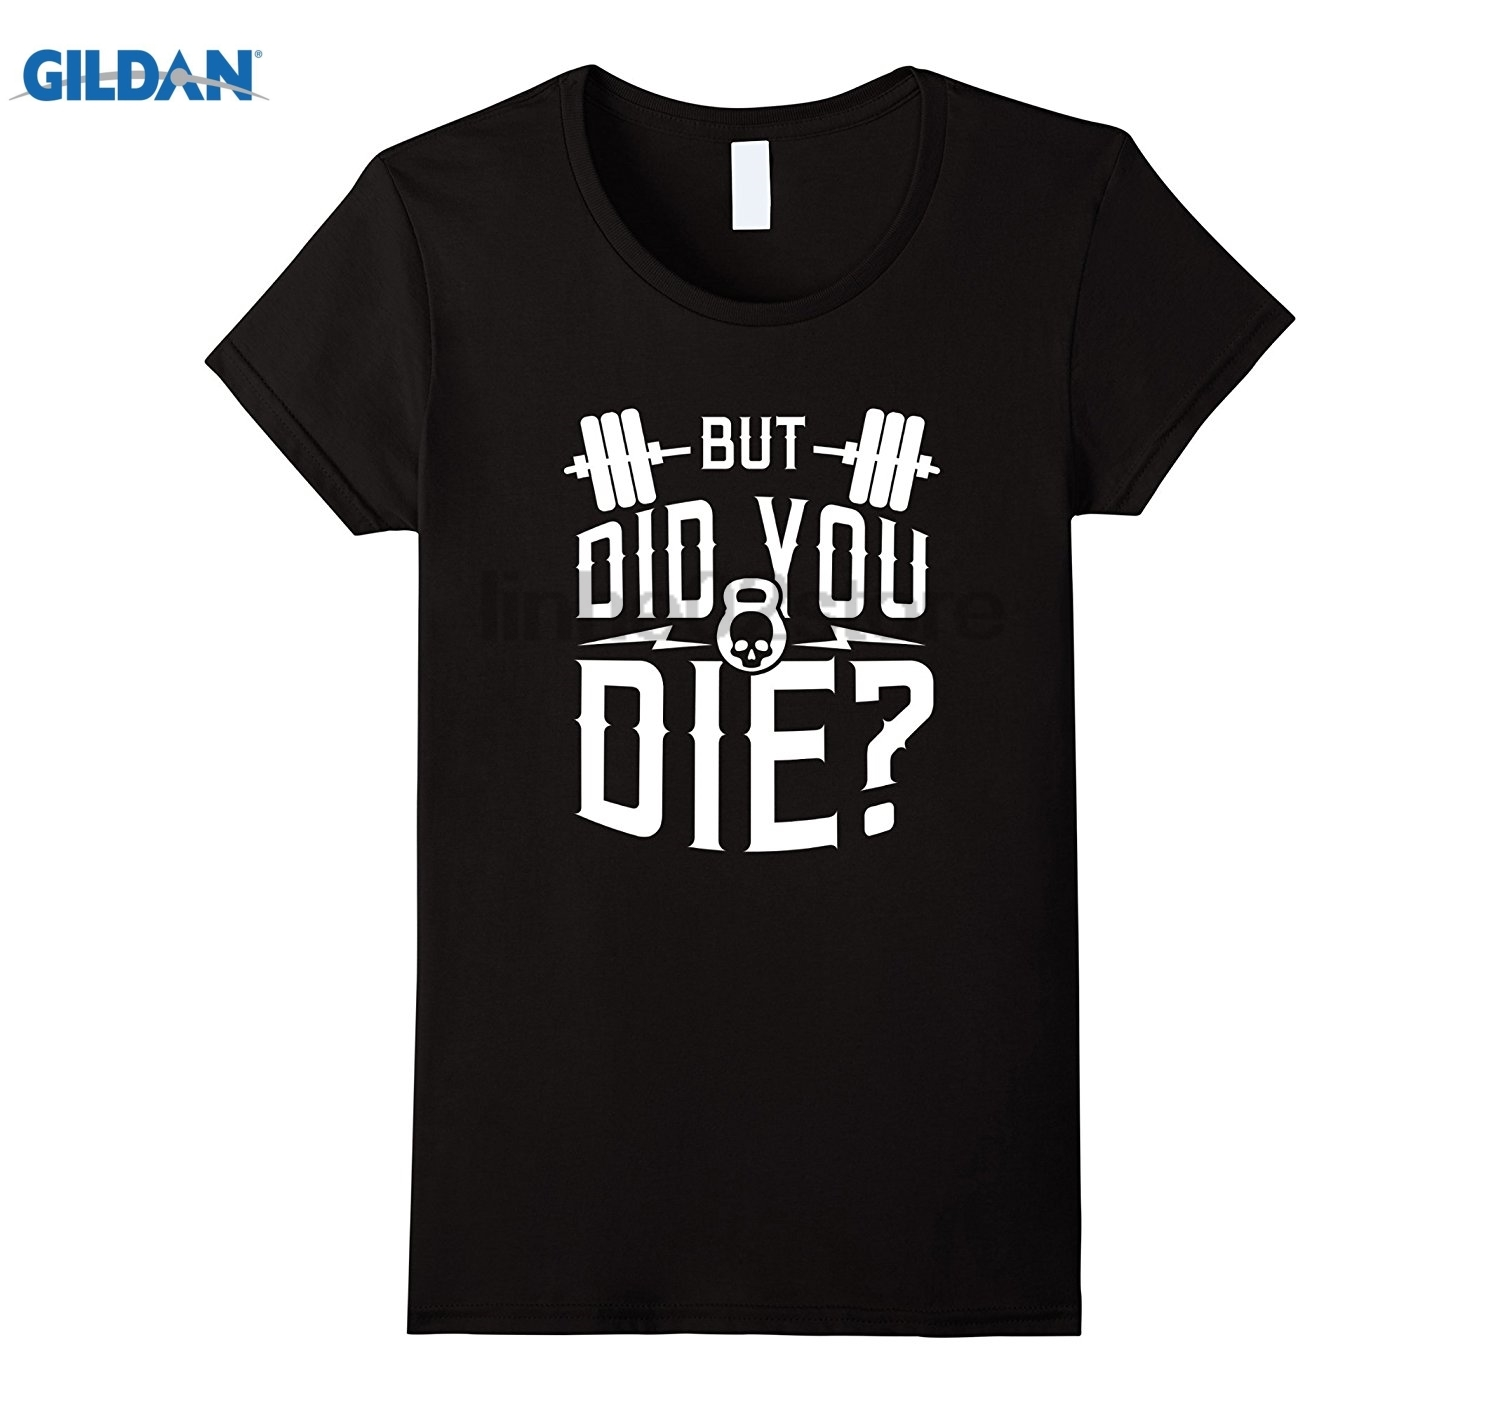 GILDAN Yeah But Did You Die Shirt Funny Humorous Quote Tshirt Hot Womens T-shirt